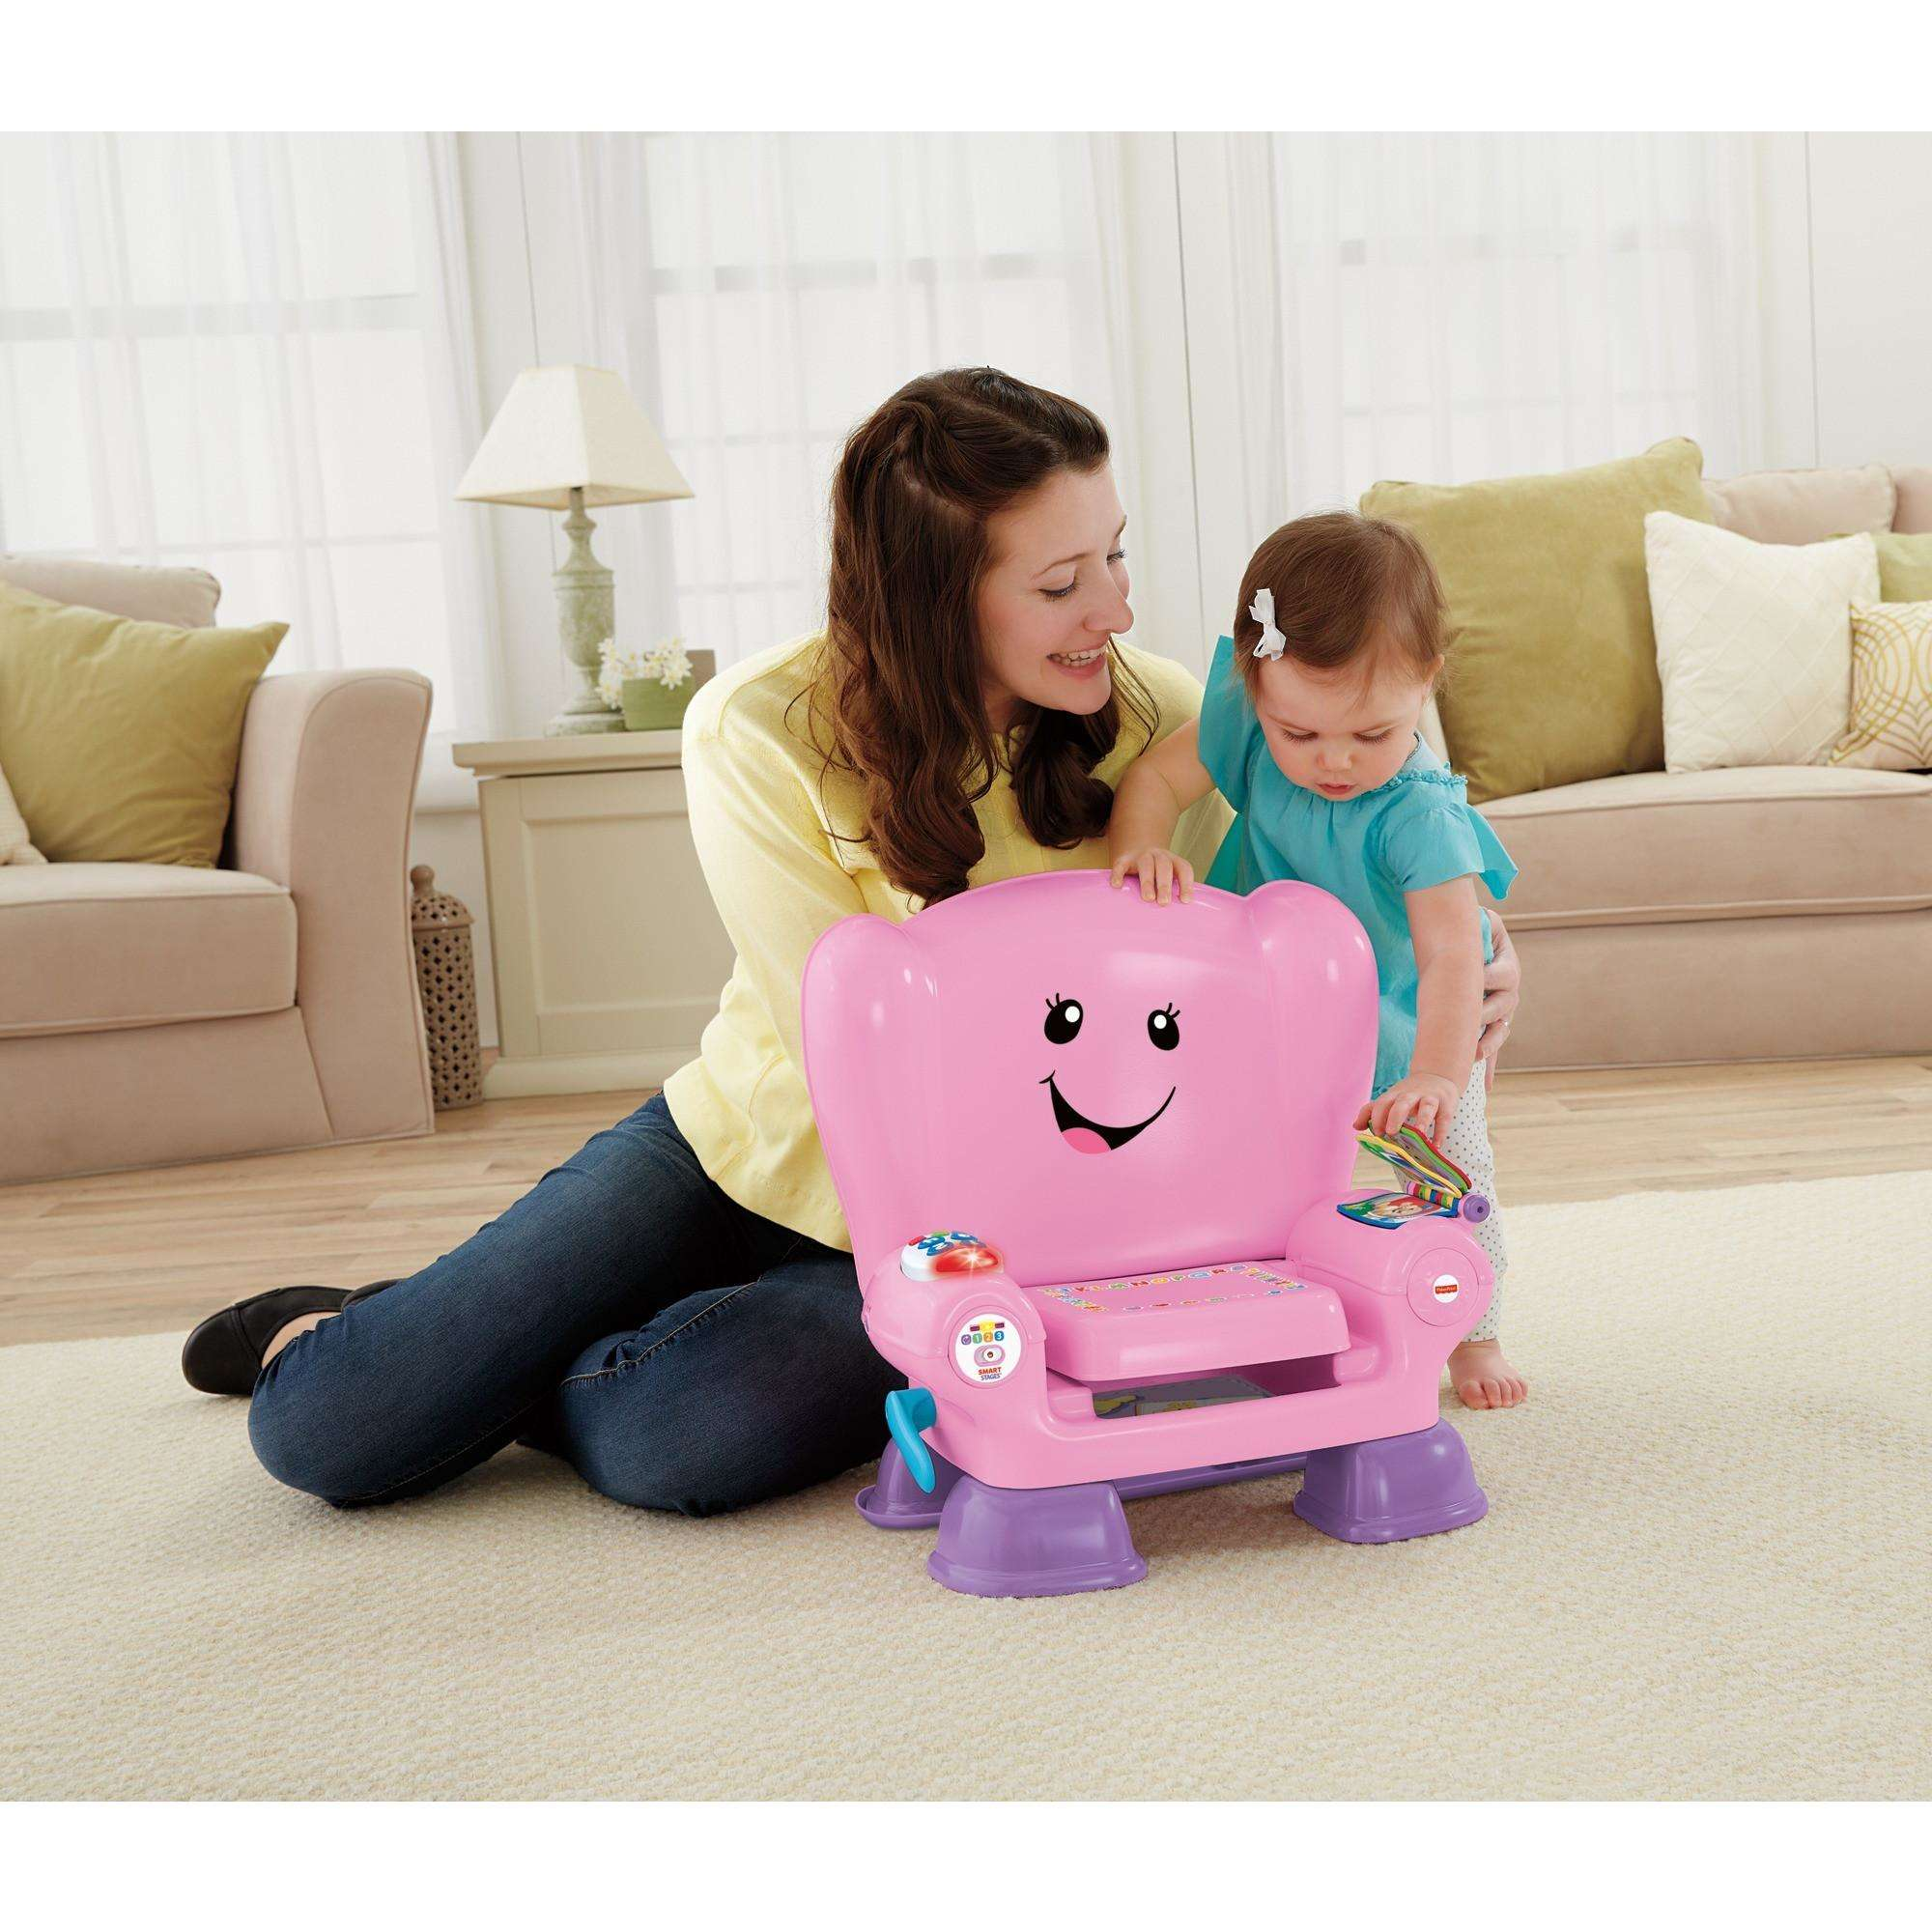 Fisher price smart stages chair - Fisher Price Smart Stages Chair 18